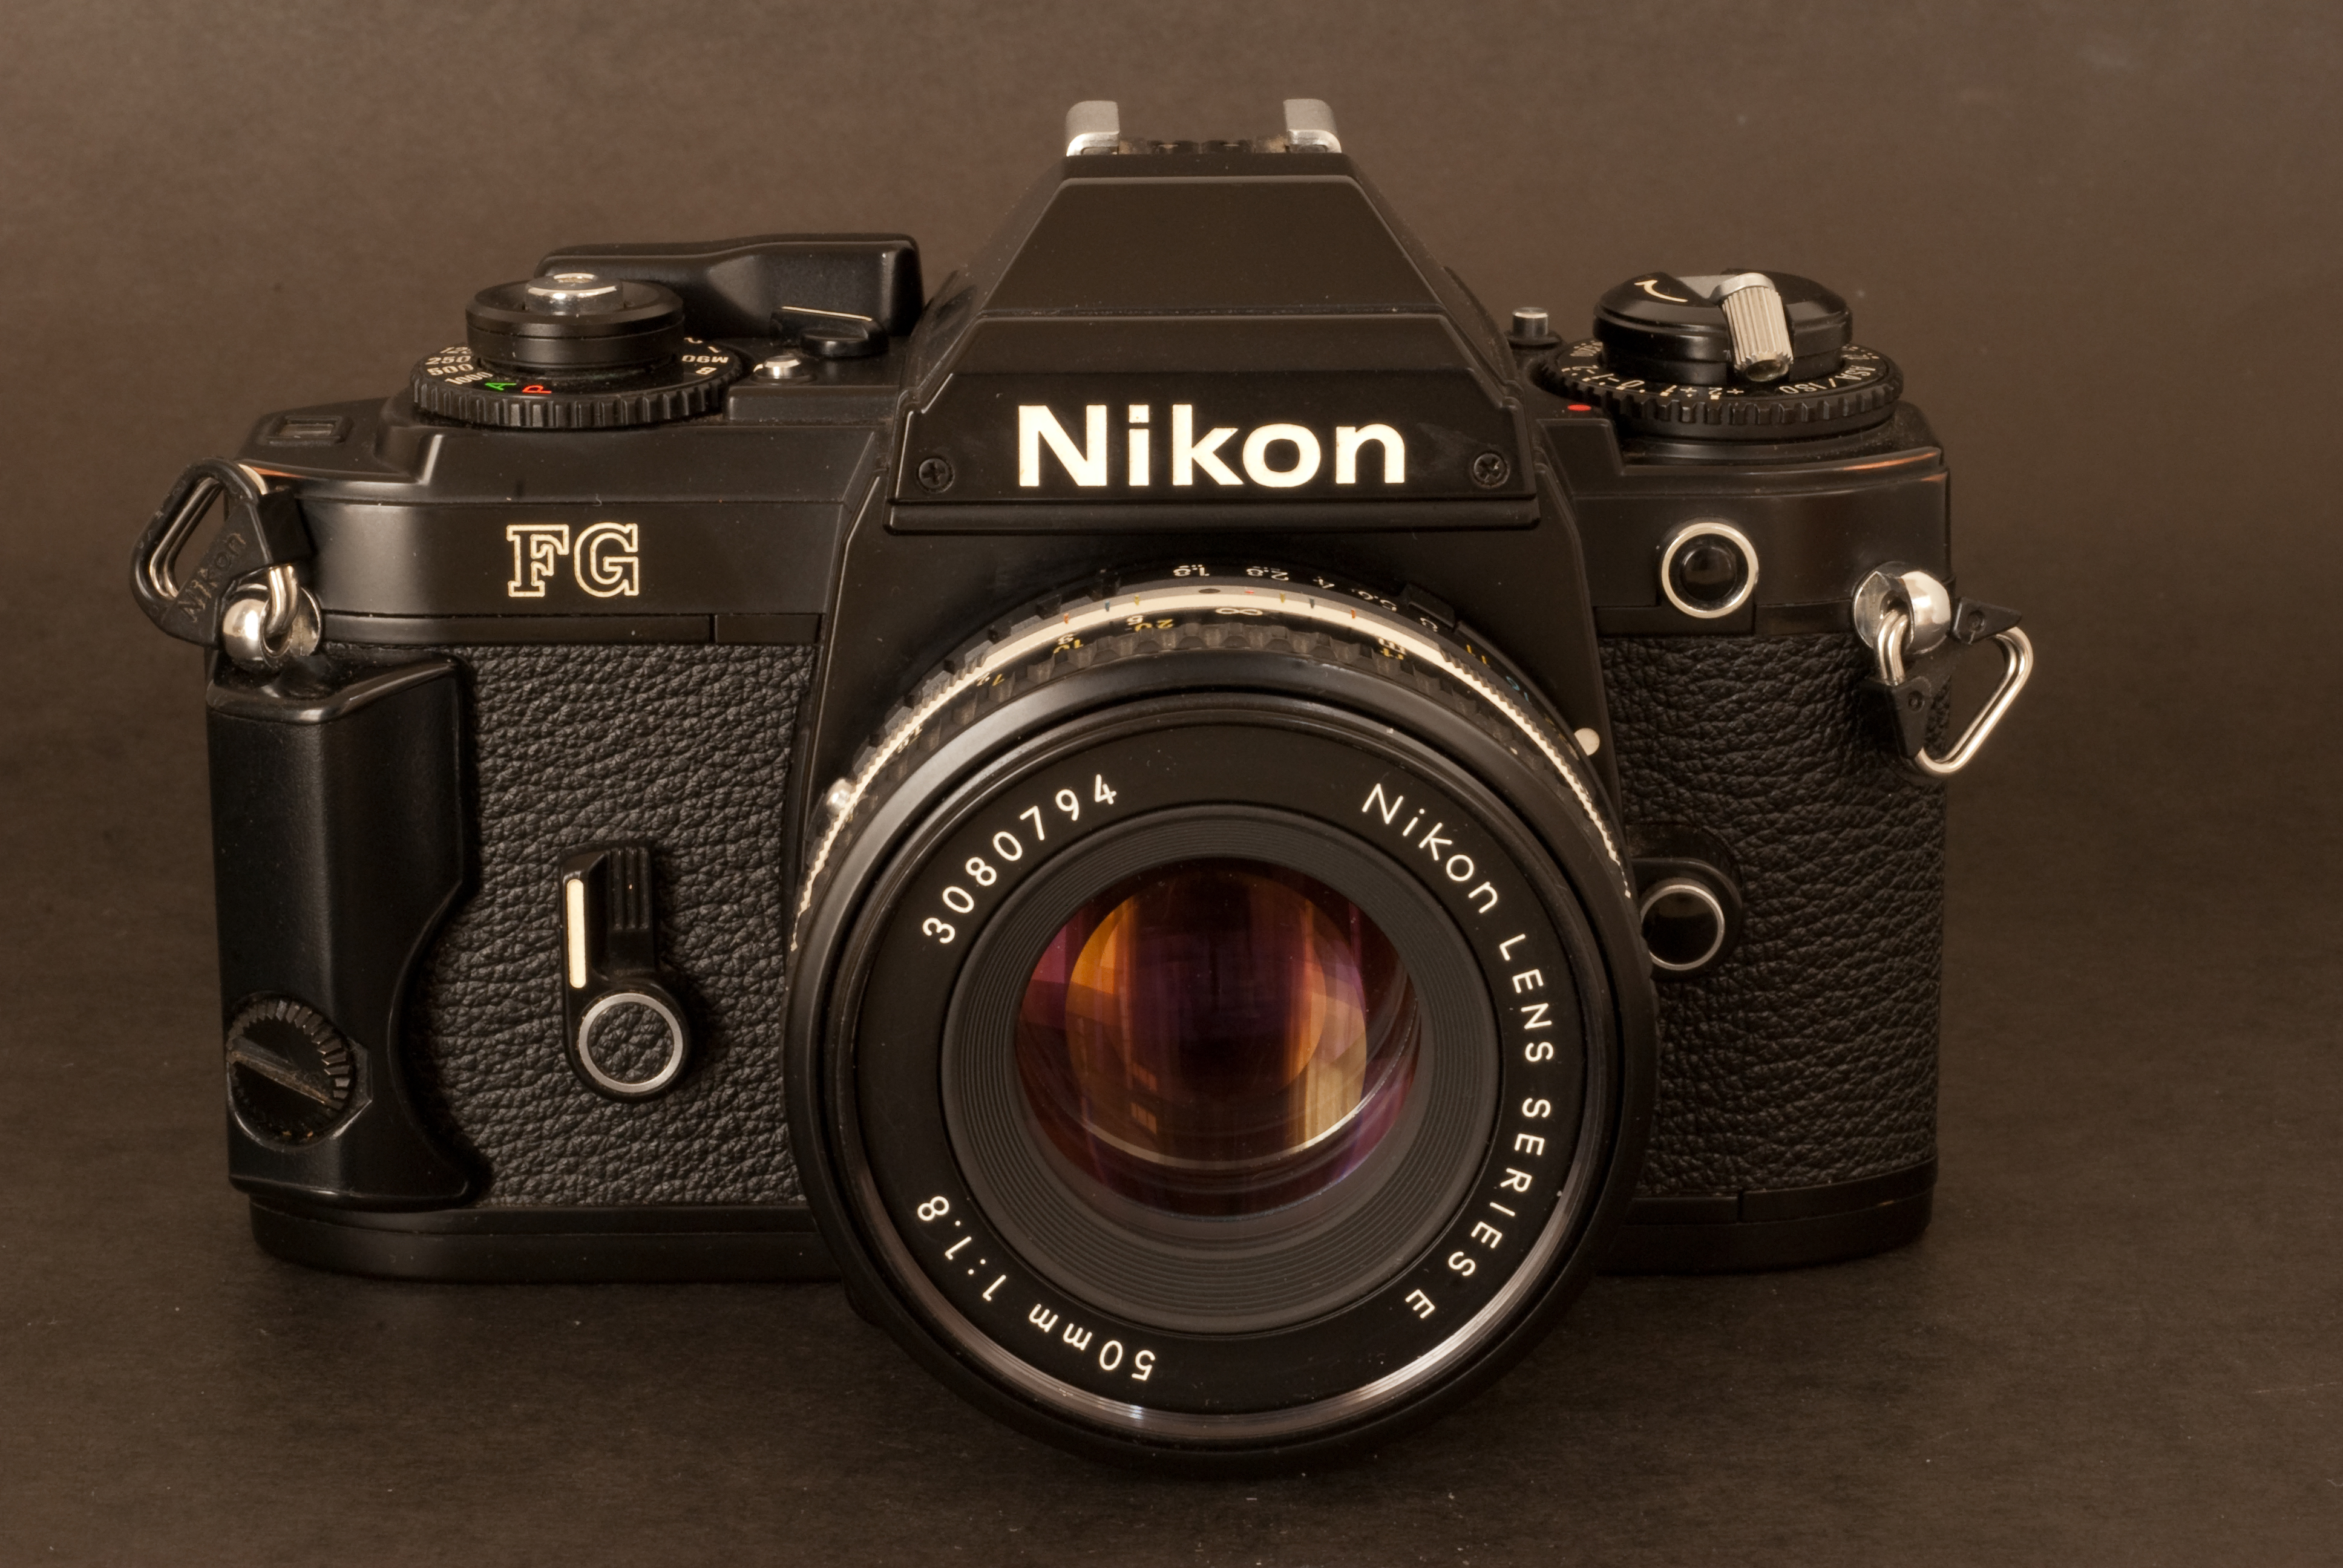 nikons s most advanced manual focus u201cultra compact u201d slr the nikon rh cameragx com nikon fg 20 manual pdf nikon fg 20 instruction manual